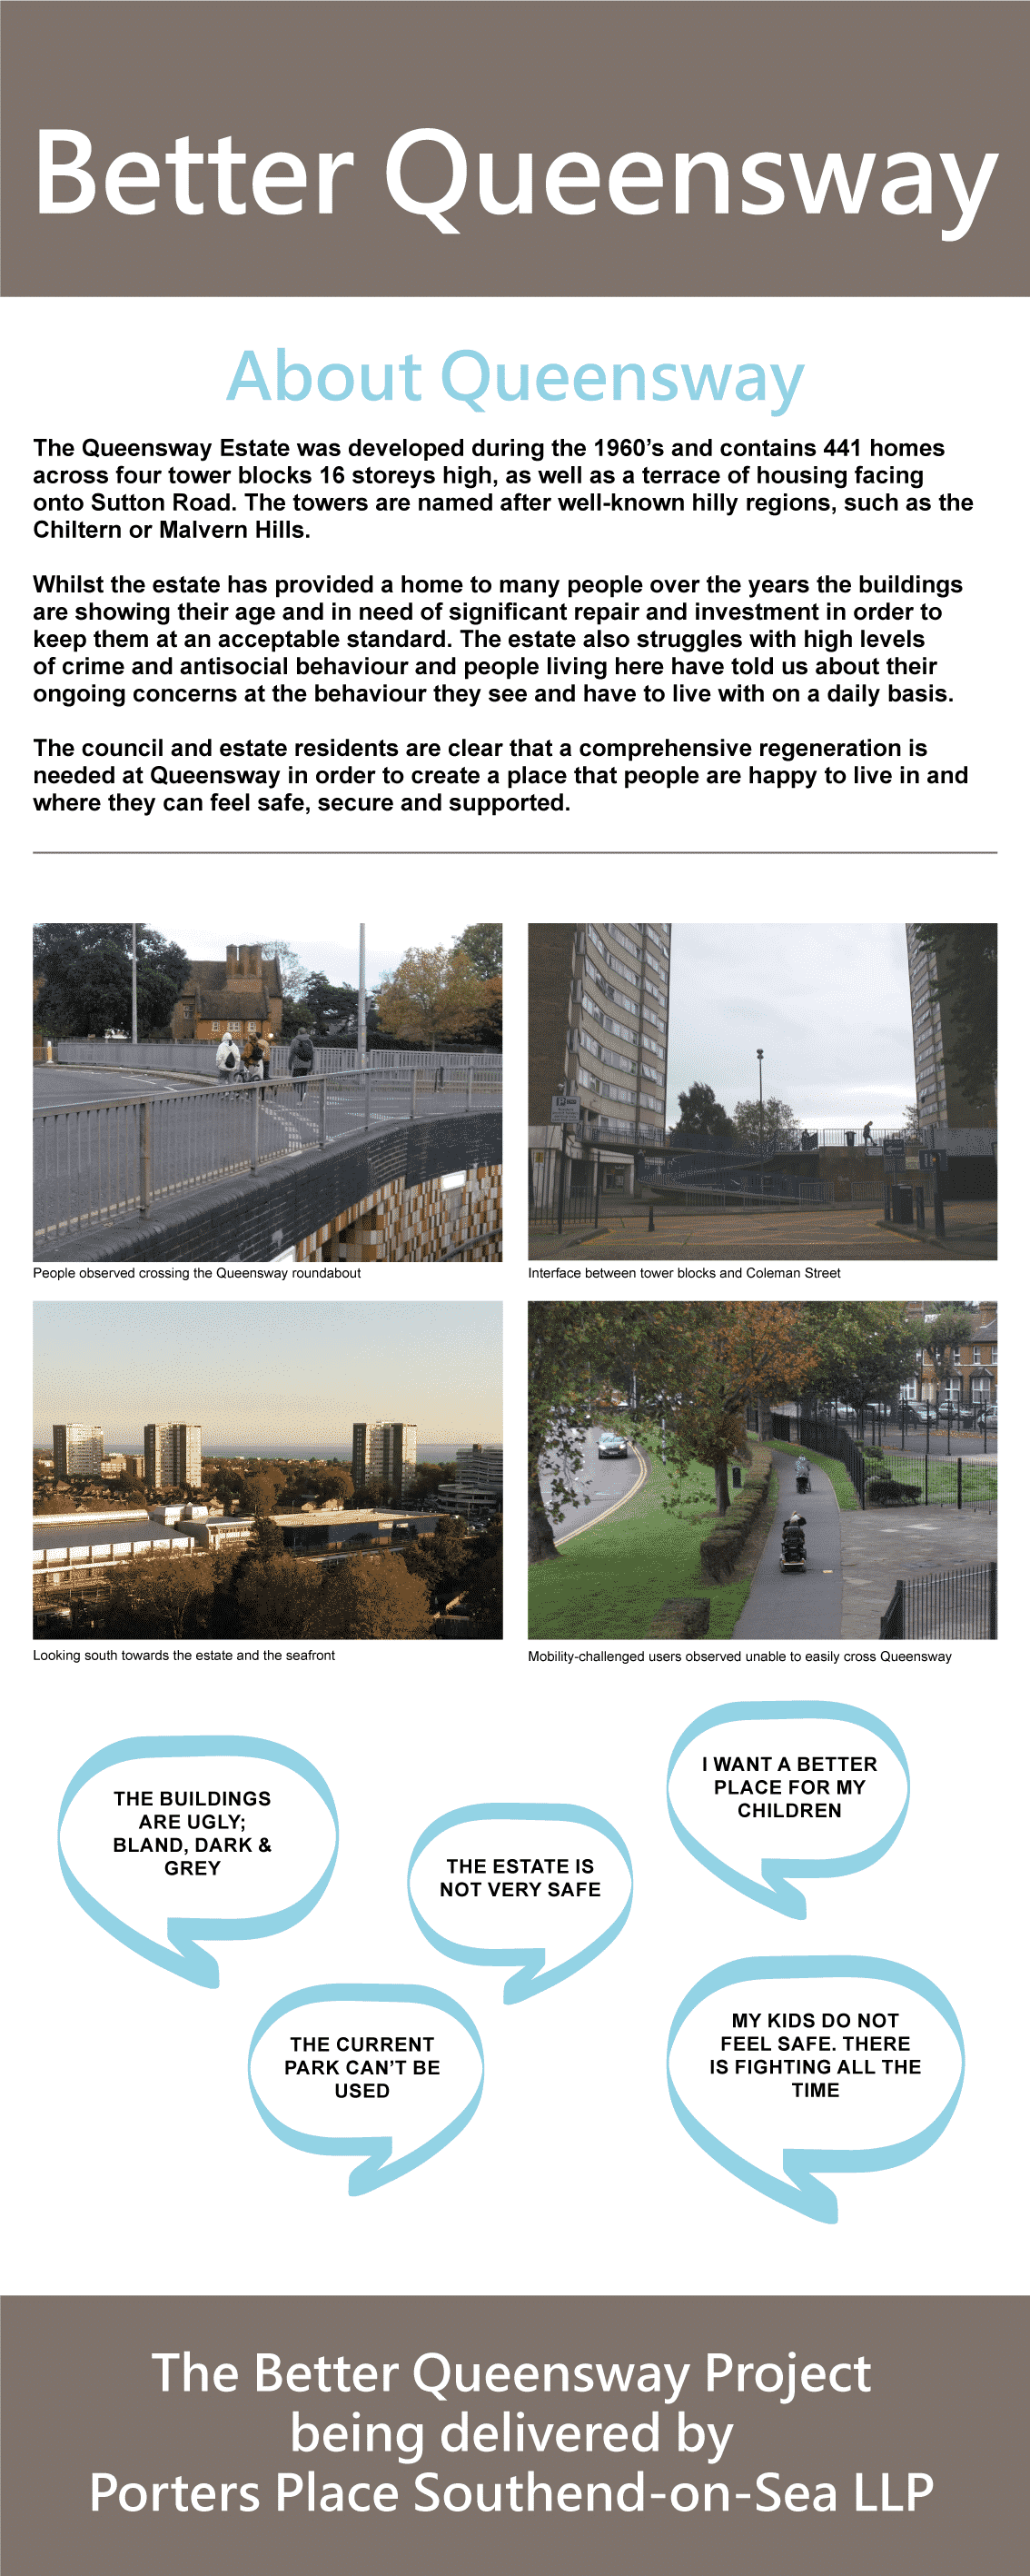 better-queensway-second-public-consultation-2